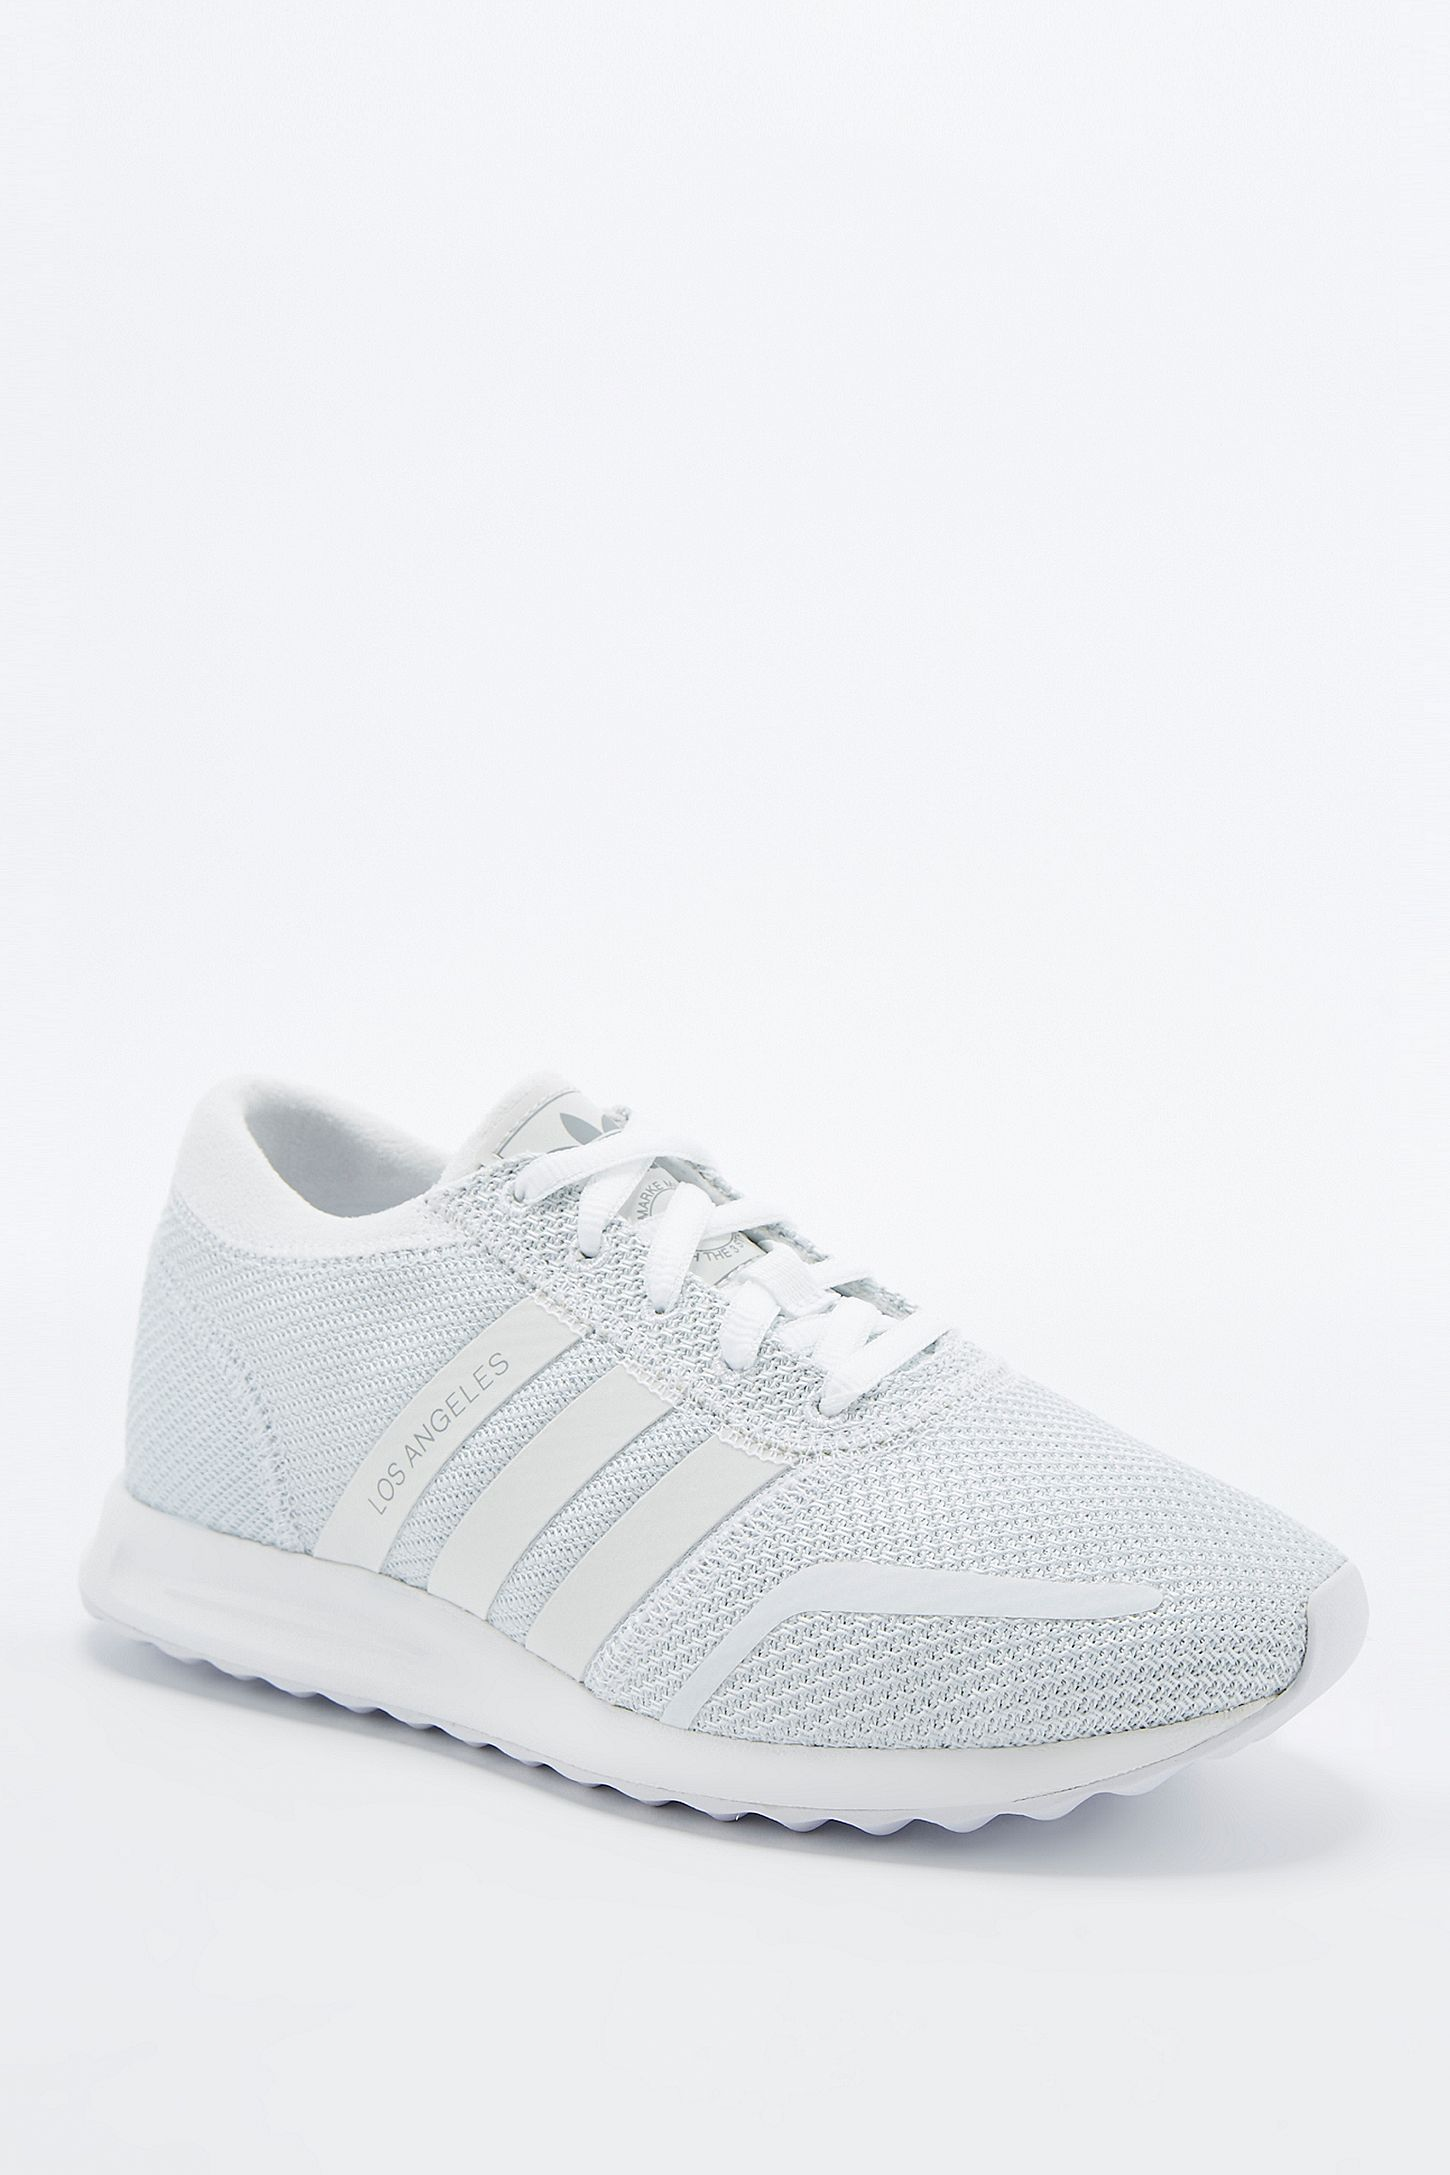 check out f30c2 ef7b4 adidas Originals Los Angeles White Trainers. Click on image to zoom. Hover  to zoom. Double Tap to Zoom